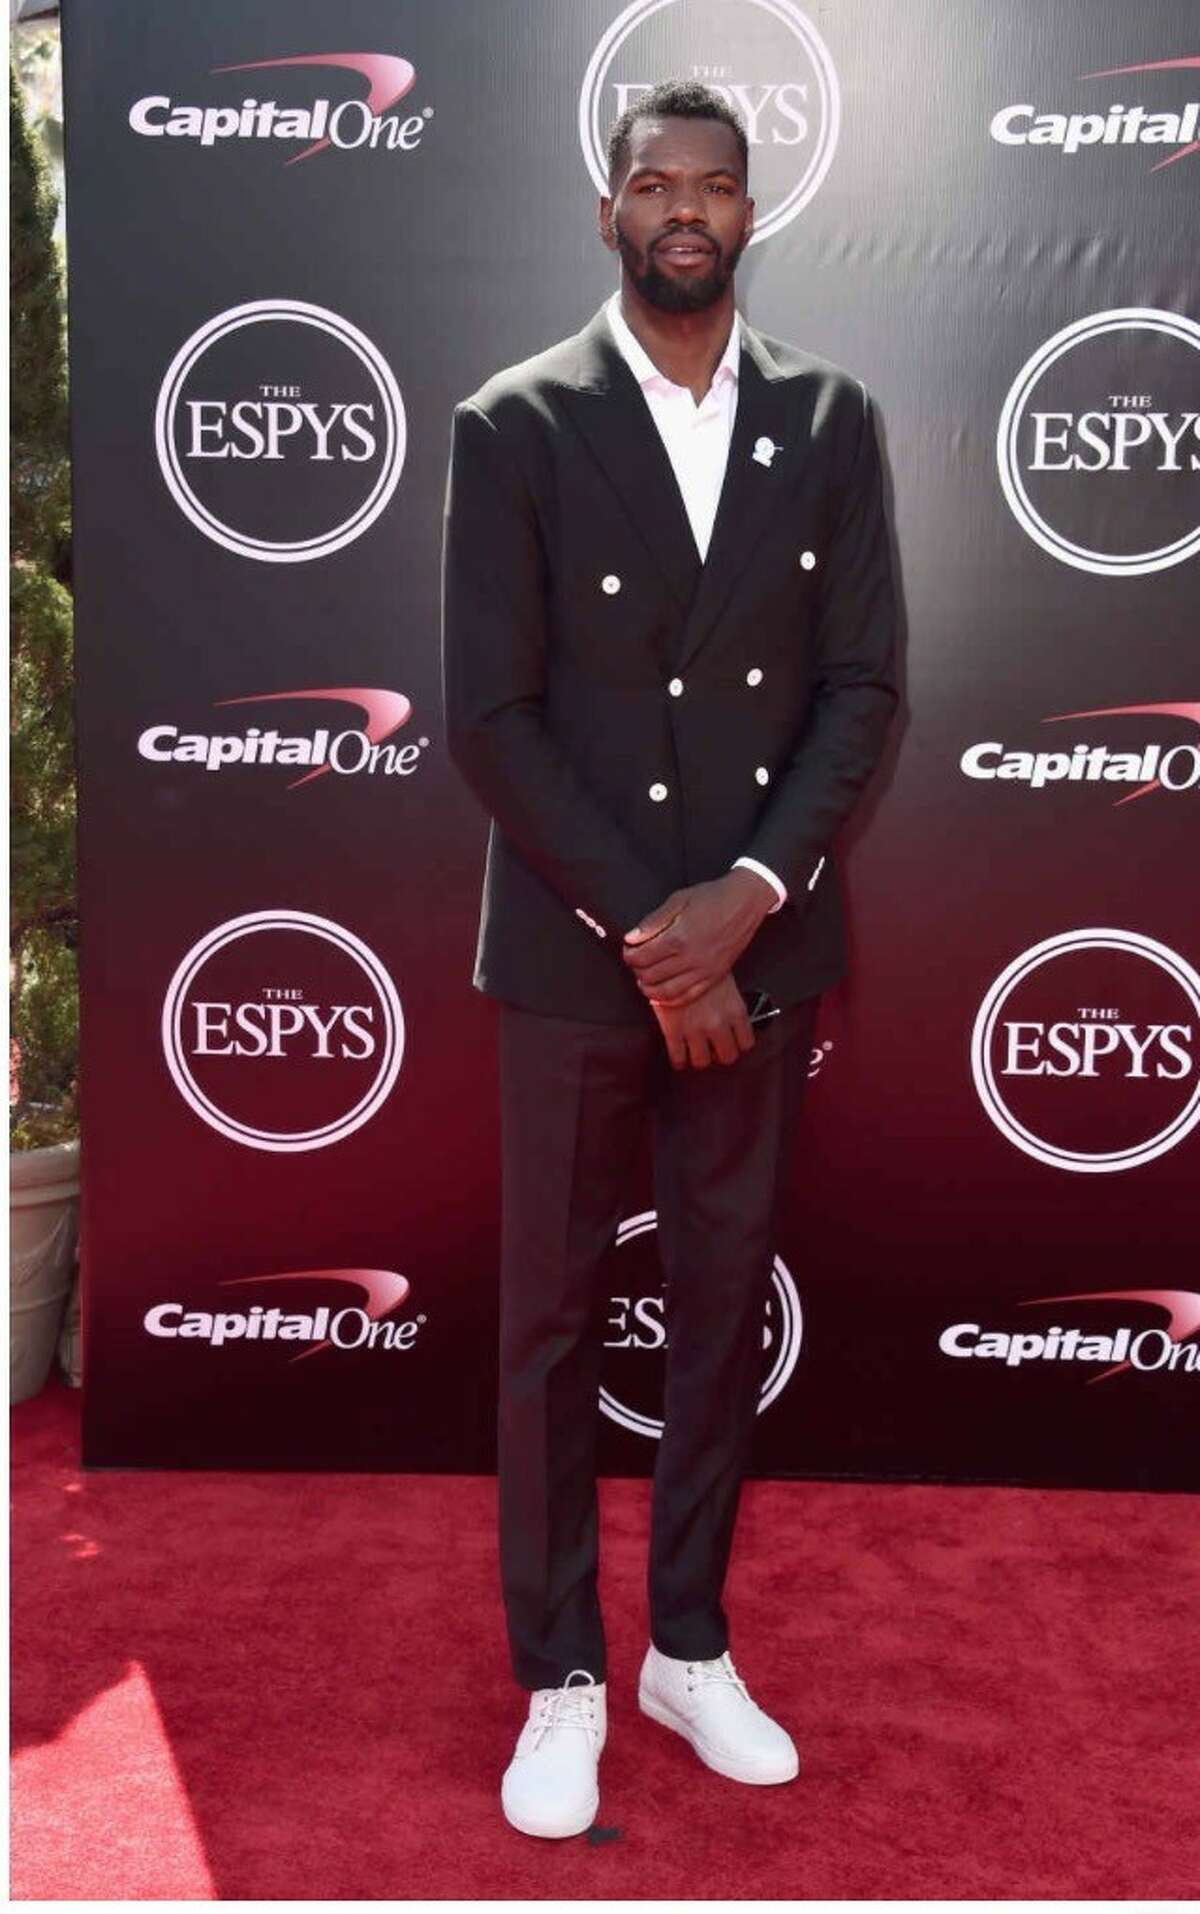 Dedmon's ESPYs red carpet look: a custom double-breasted jacket, white button down, black pants and Del Toro shoes, all custom-made for him, Doyle said.